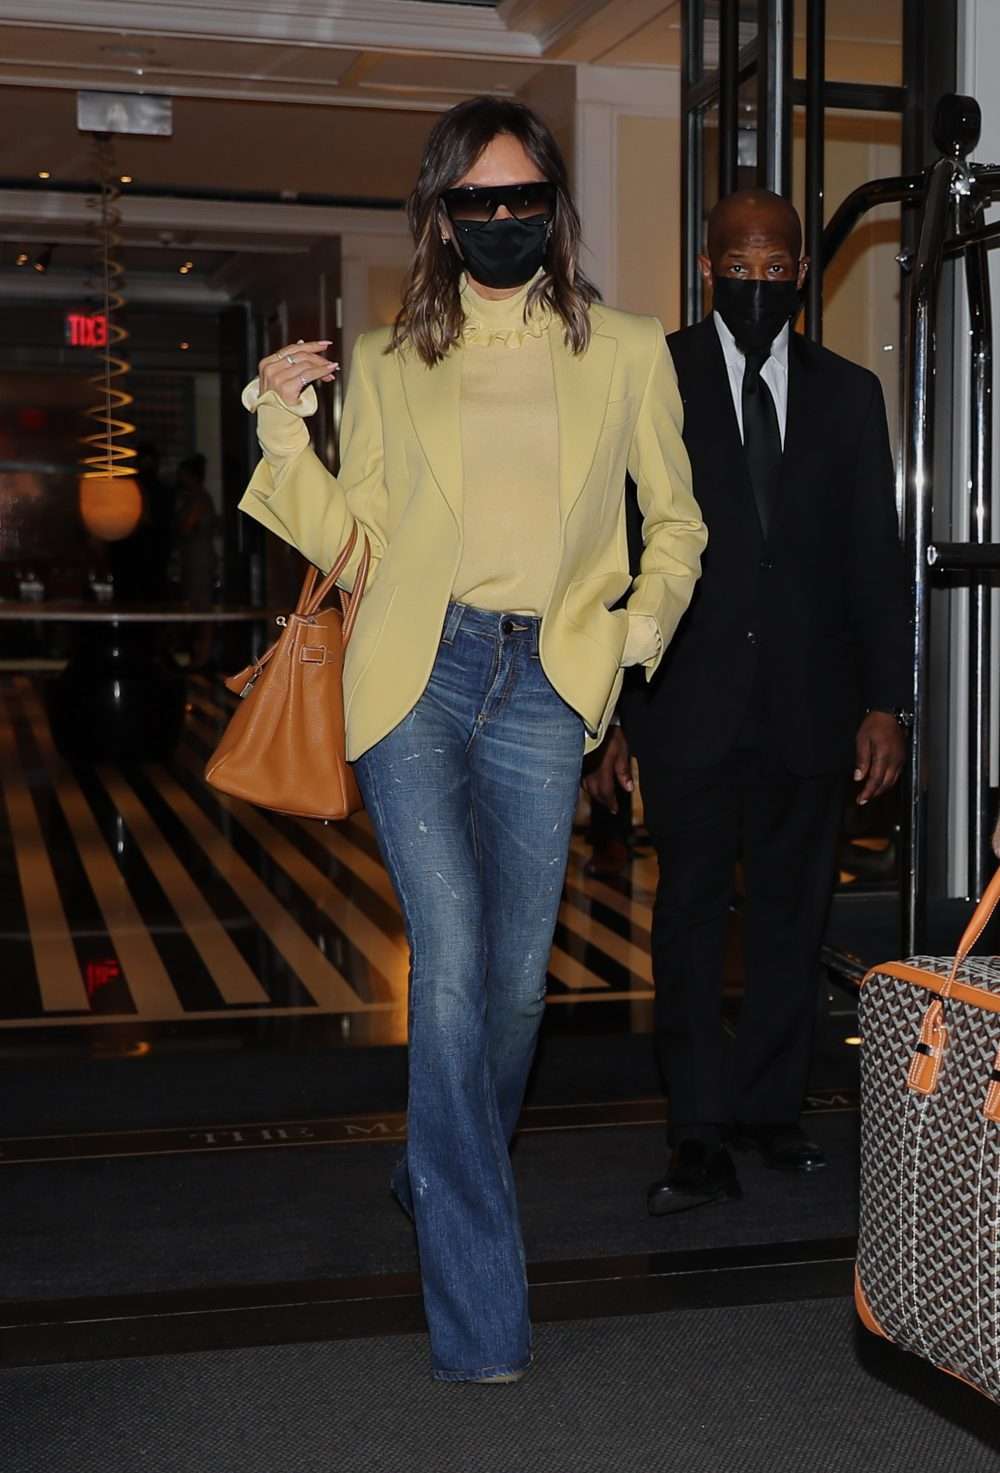 Victoria Beckham and David Beckham were spotted leaving The Mark Hotel in NYC, heading to the Airport